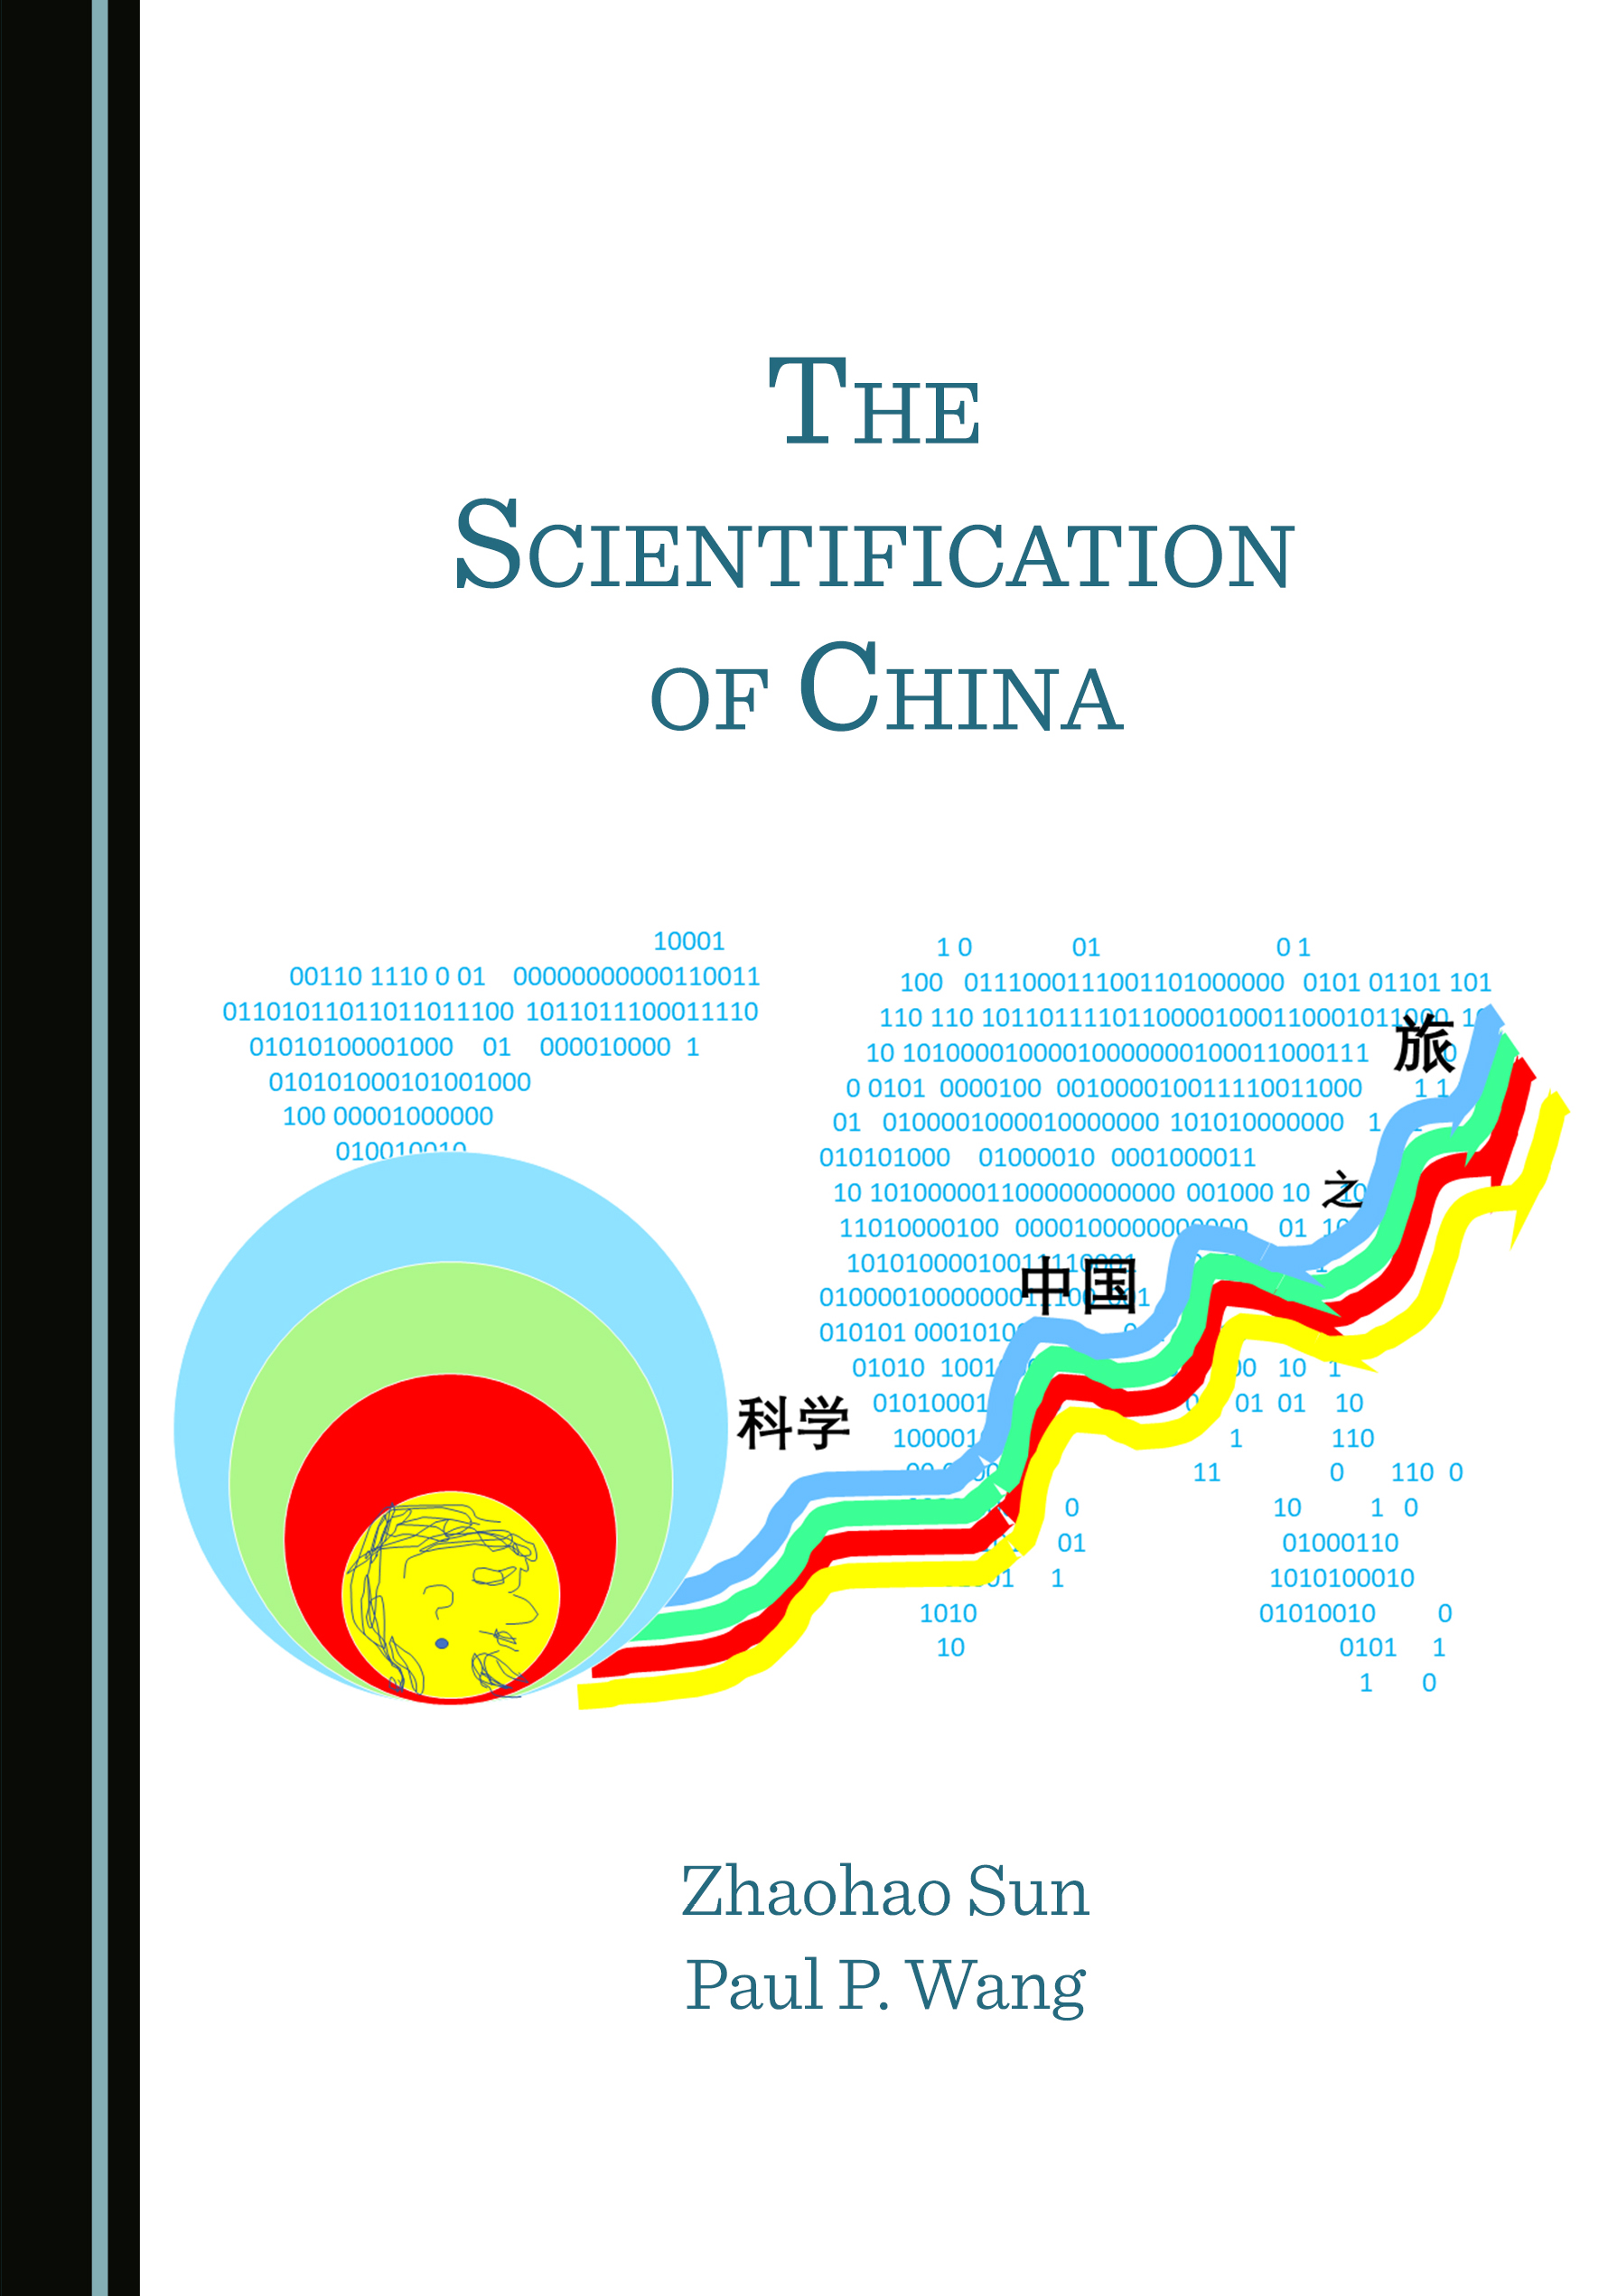 The Scientification of China